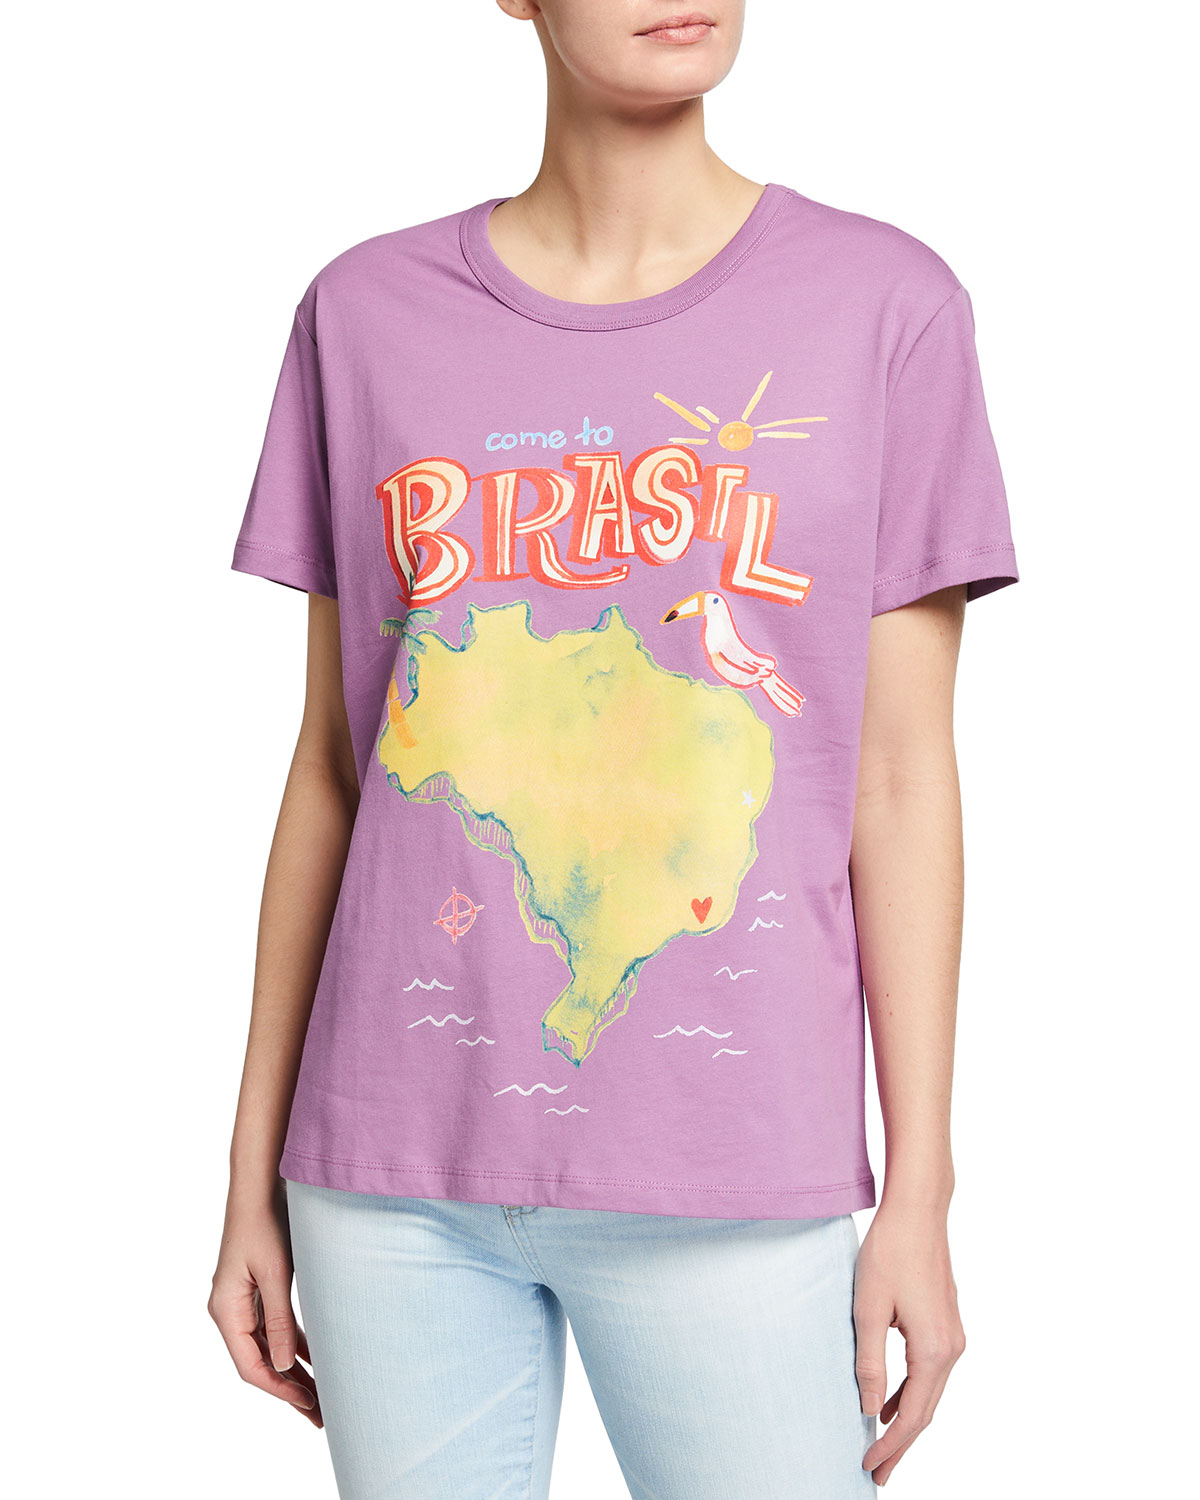 Farm Rio Cottons COME TO BRASIL GRAPHIC T-SHIRT